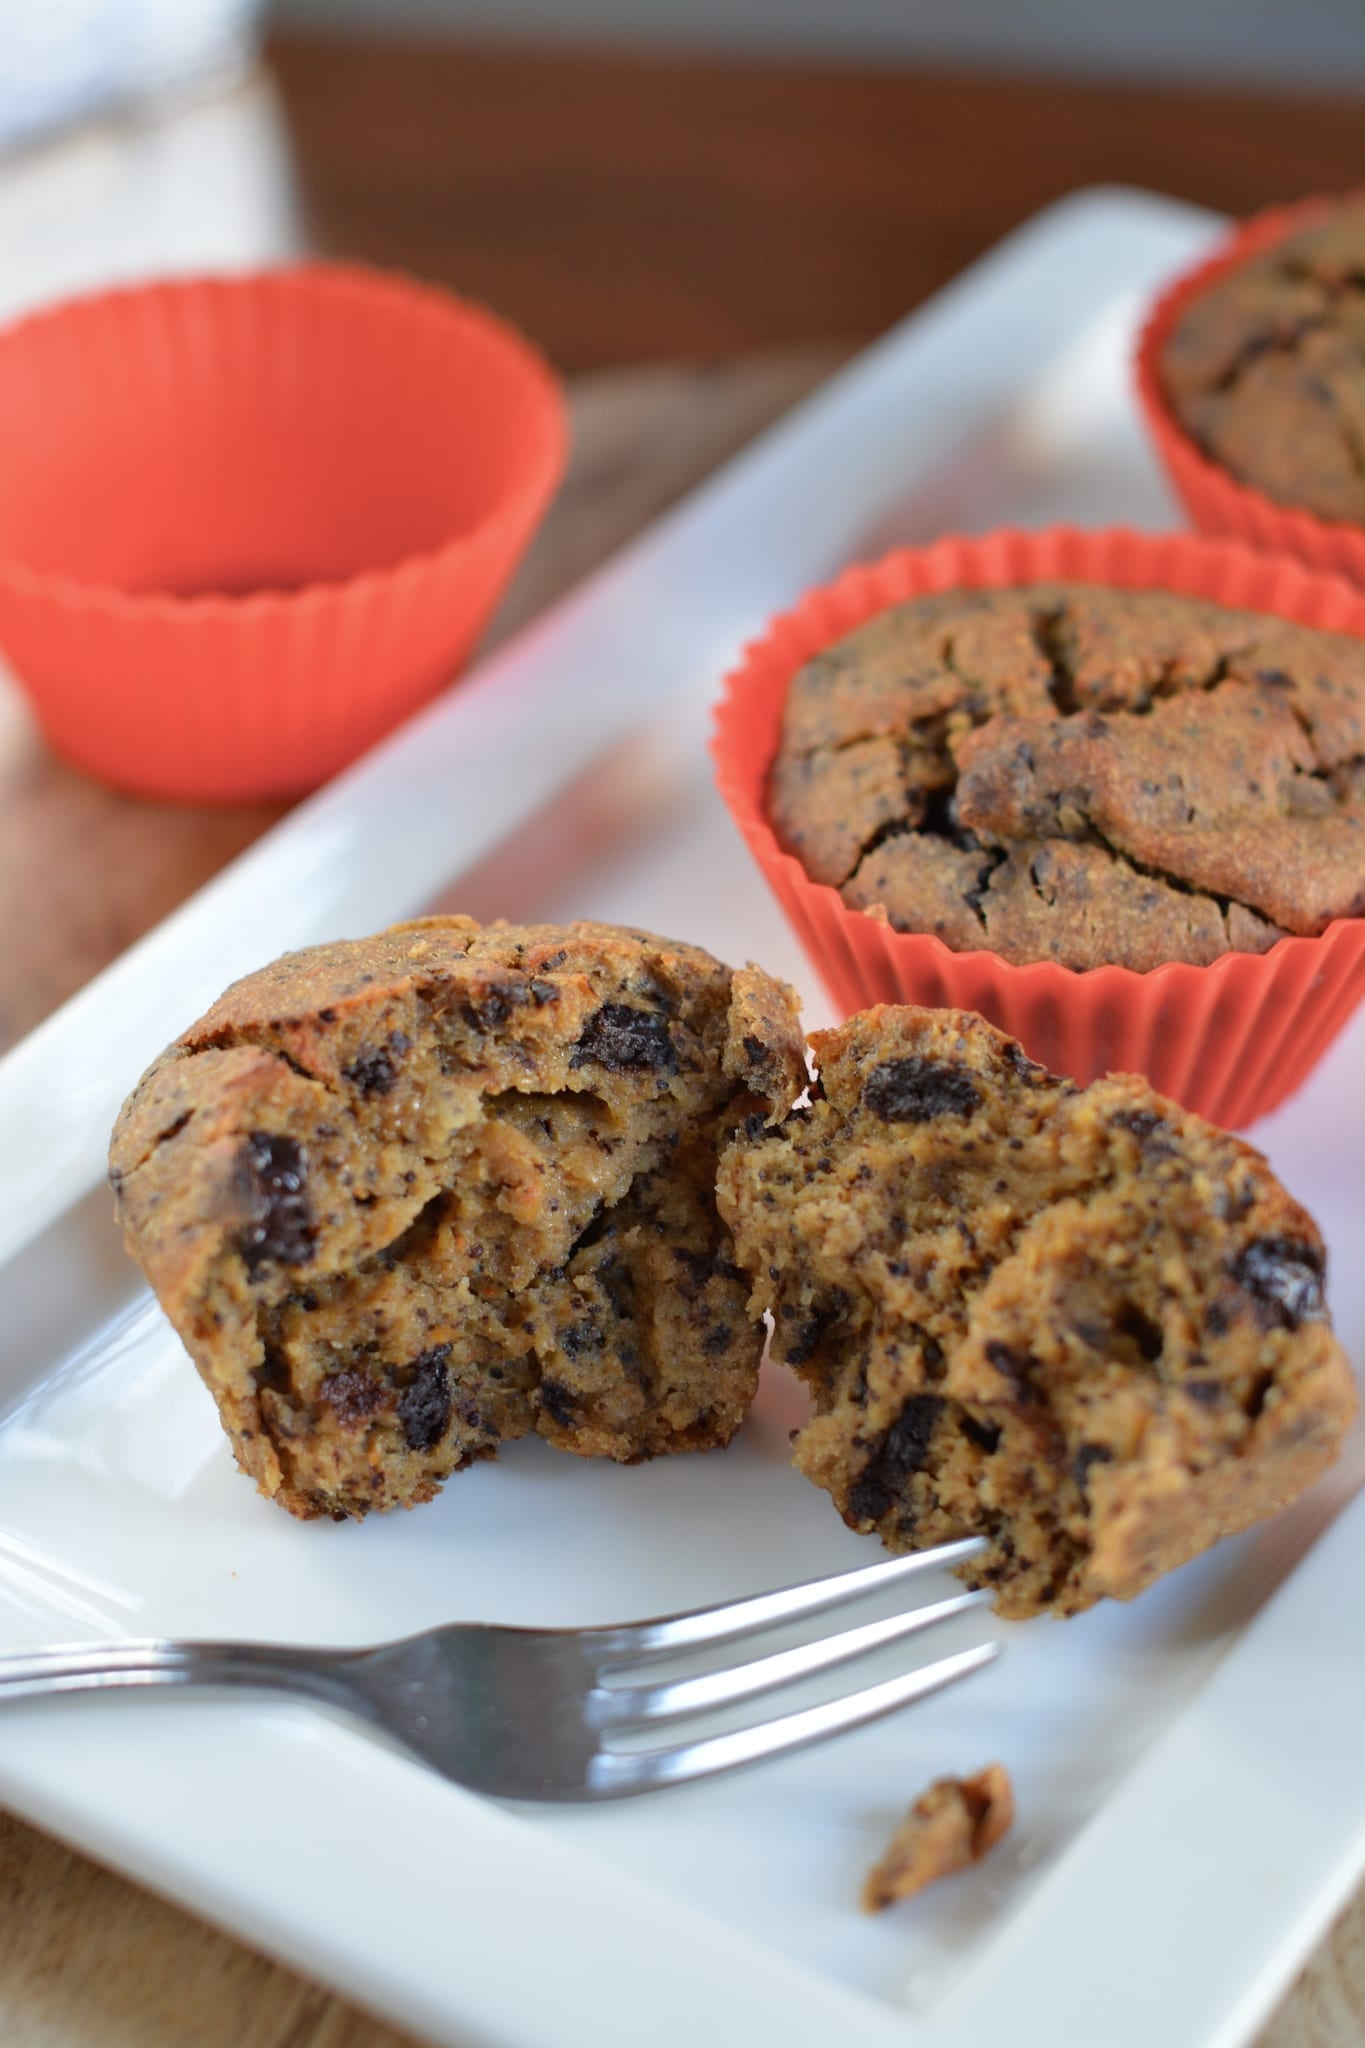 Poppy Seed Muffins with Chocolate Buttons